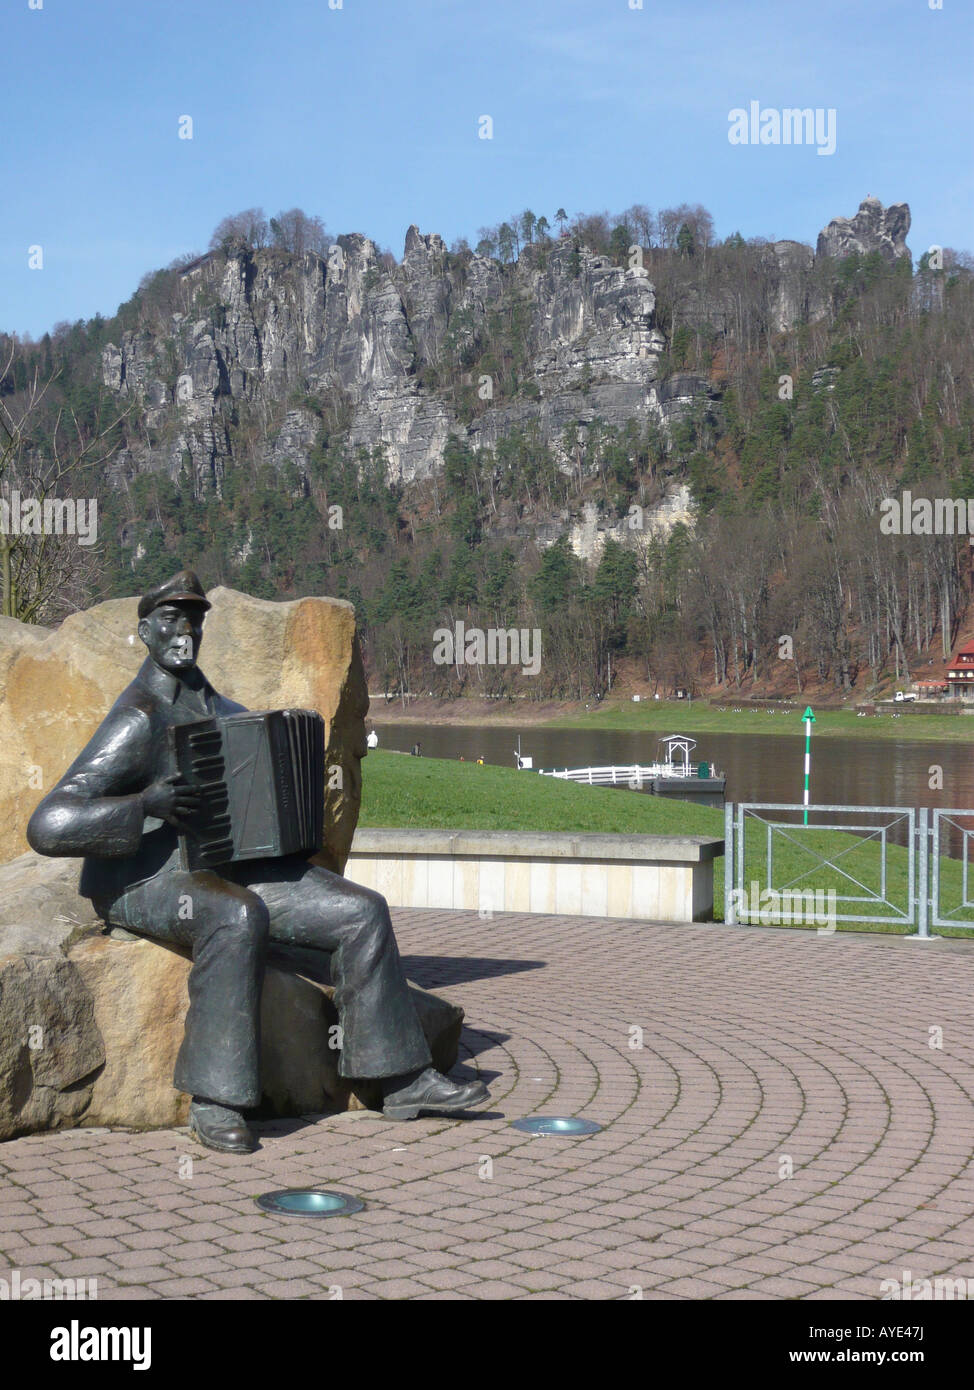 Sculpture of an accordion player in Oberrathen in front of the river Elbe and the rocks of the 'Bastei'. - Stock Image